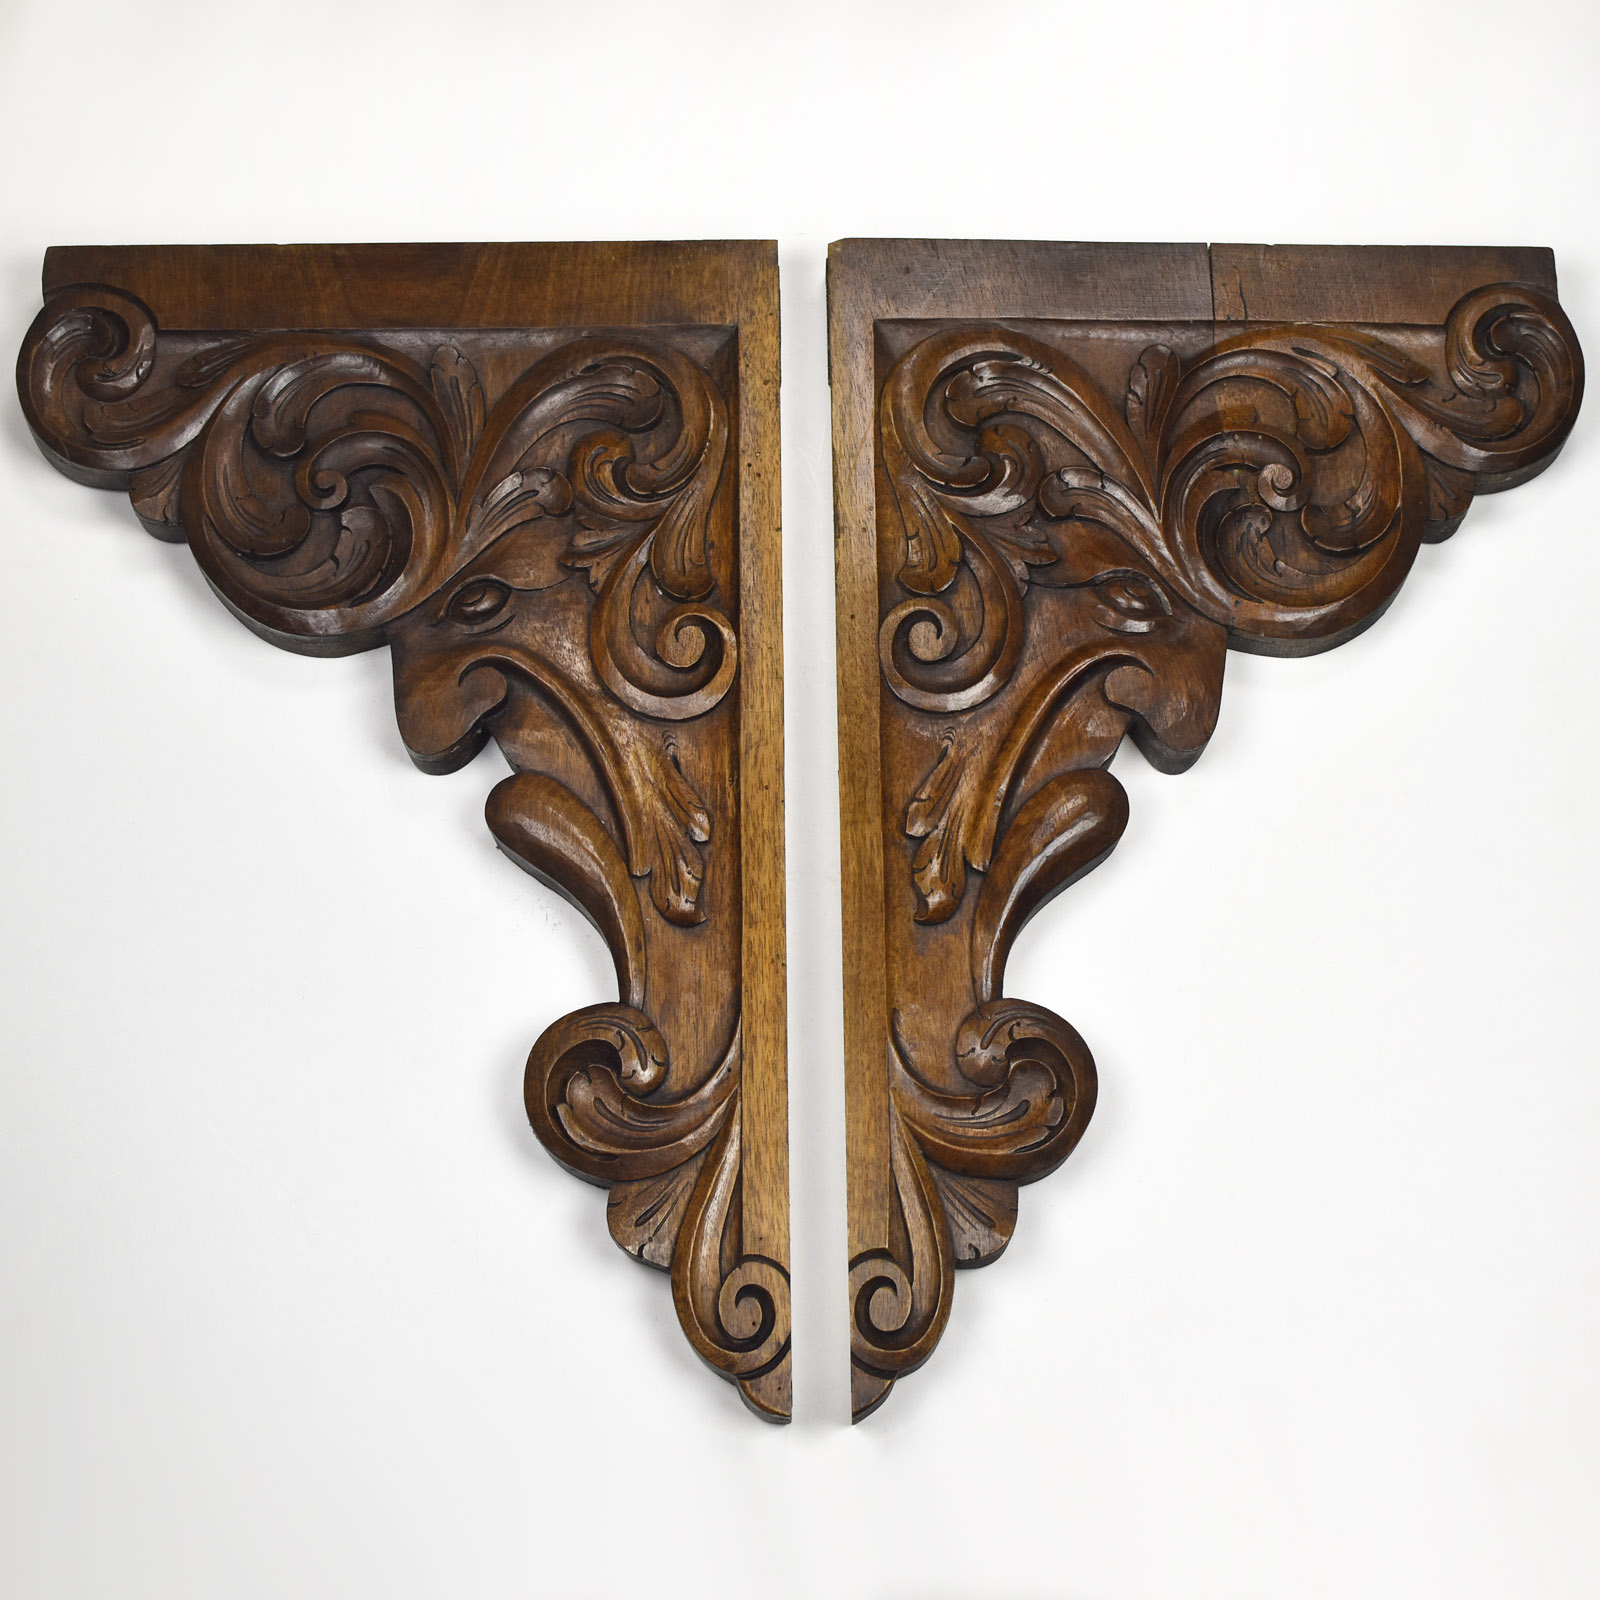 Details About Antique French Carved Wood Wall Shelf Rack Console Corbels Brackets Renaissance